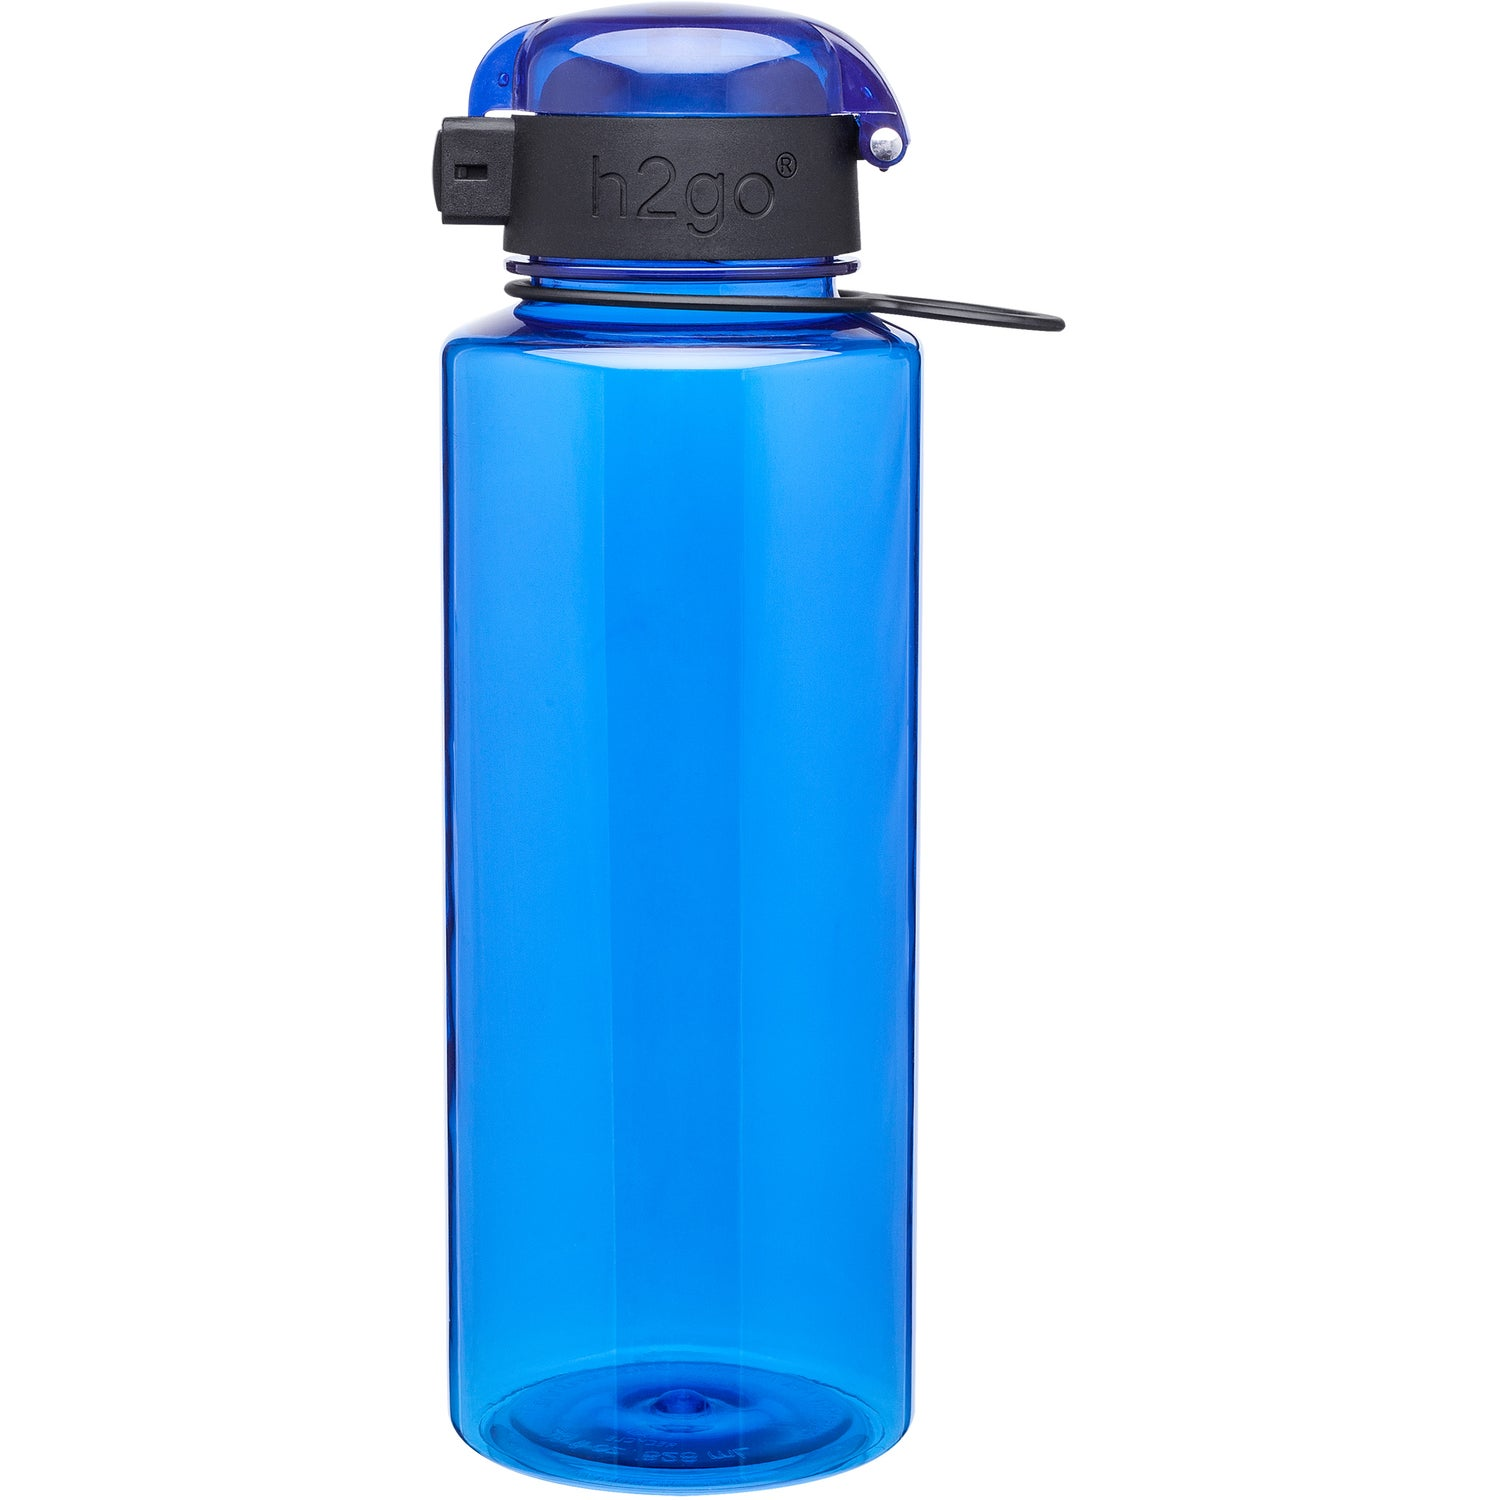 Promotional Oz Hgo Pismo Water Bottles With Custom Logo For - H2go water bottle